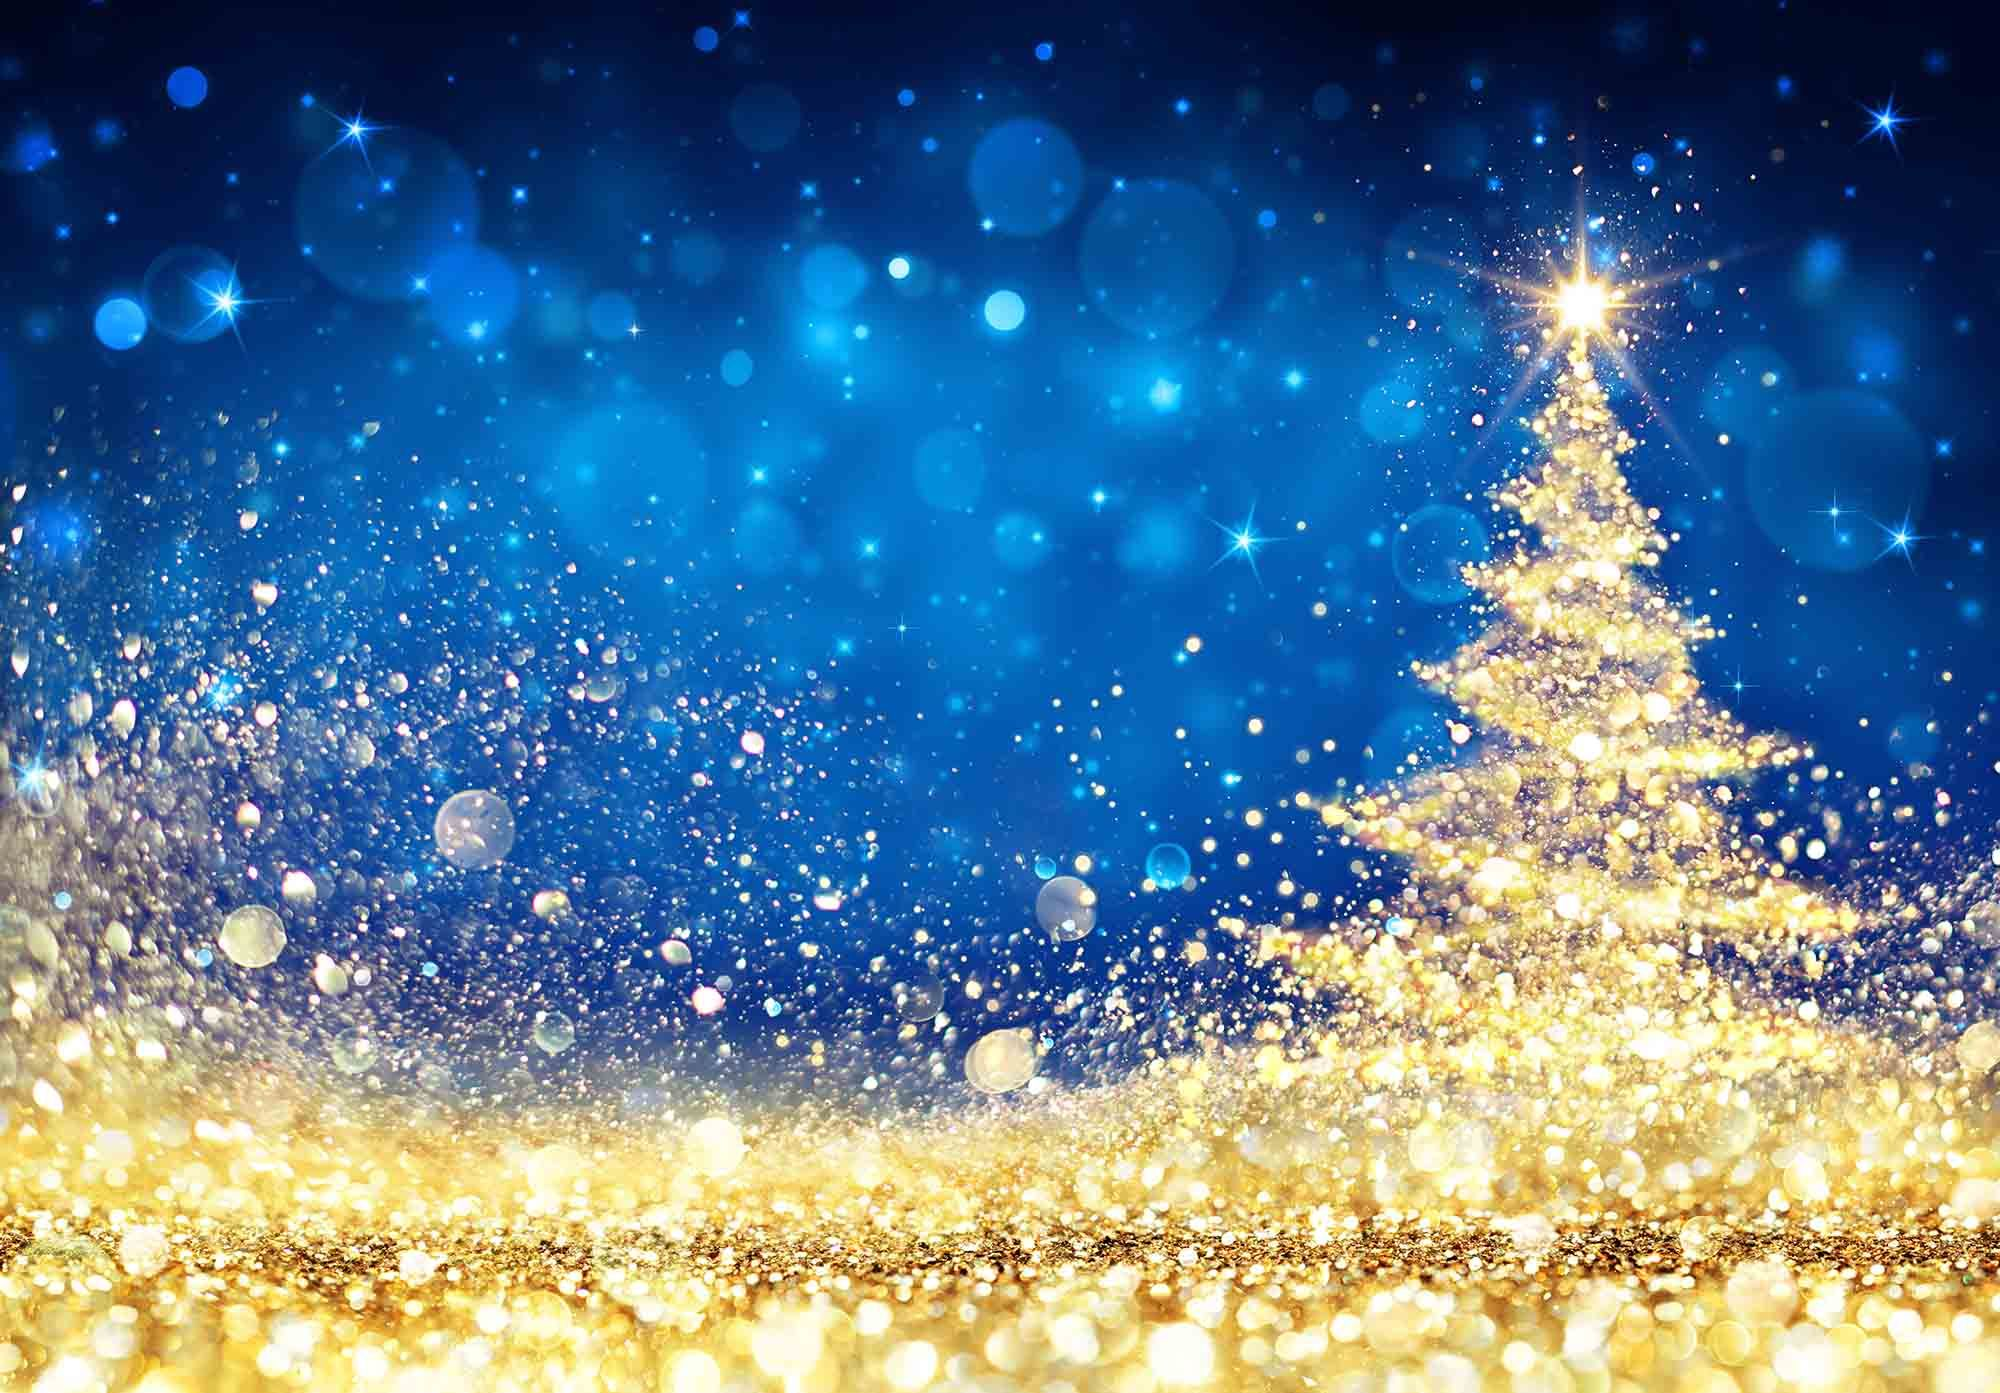 Shiny Christmas Tree Golden Dust Glittering In The Blue Background Backdrop Christmas Tree Painting Christmas Tree Background Christmas Paintings